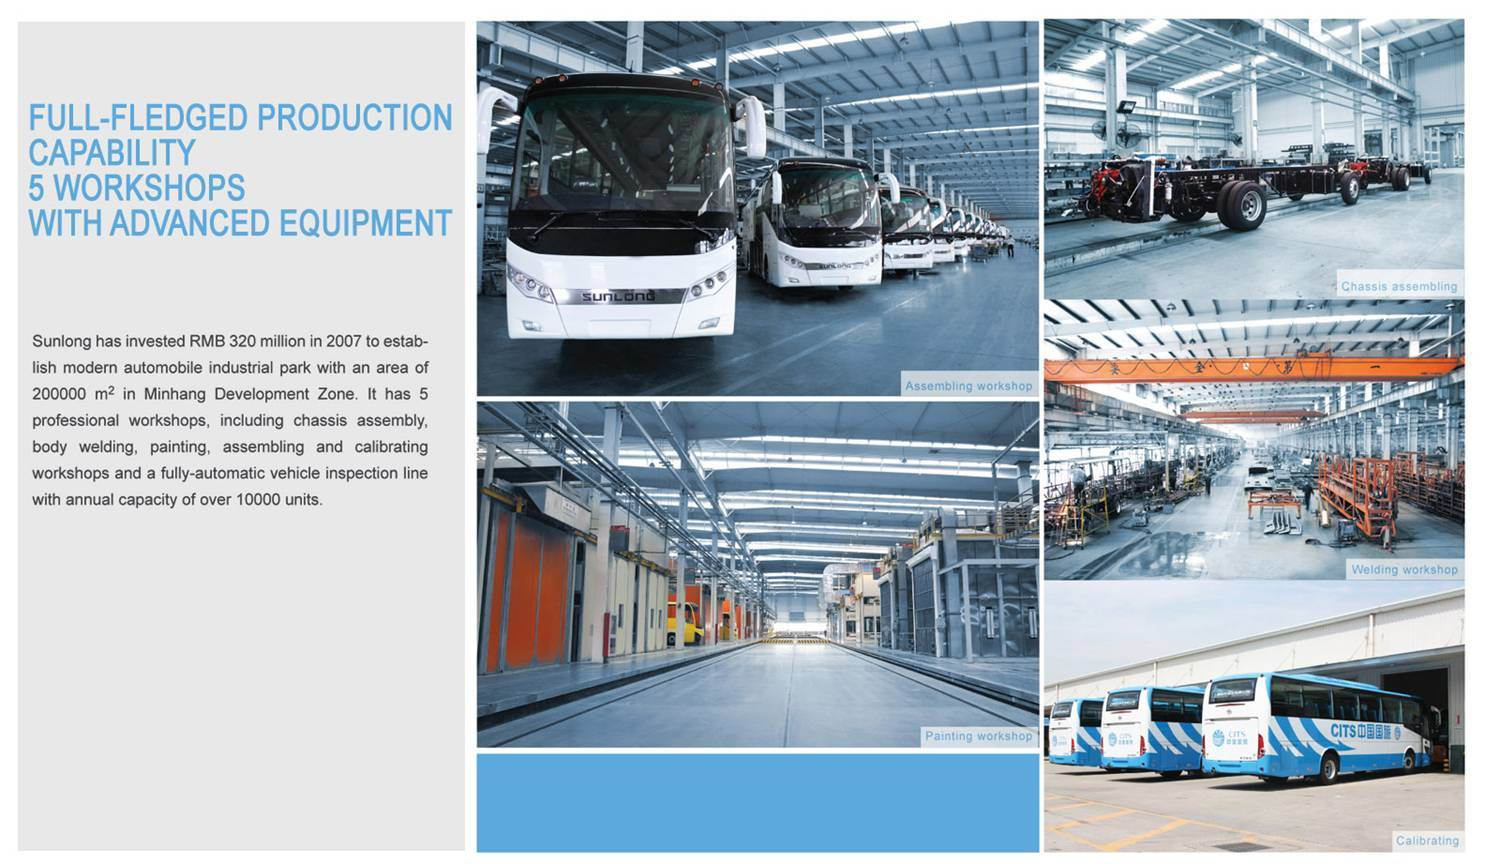 Full-fledged production capability, 5 workshops with advanced equipment.